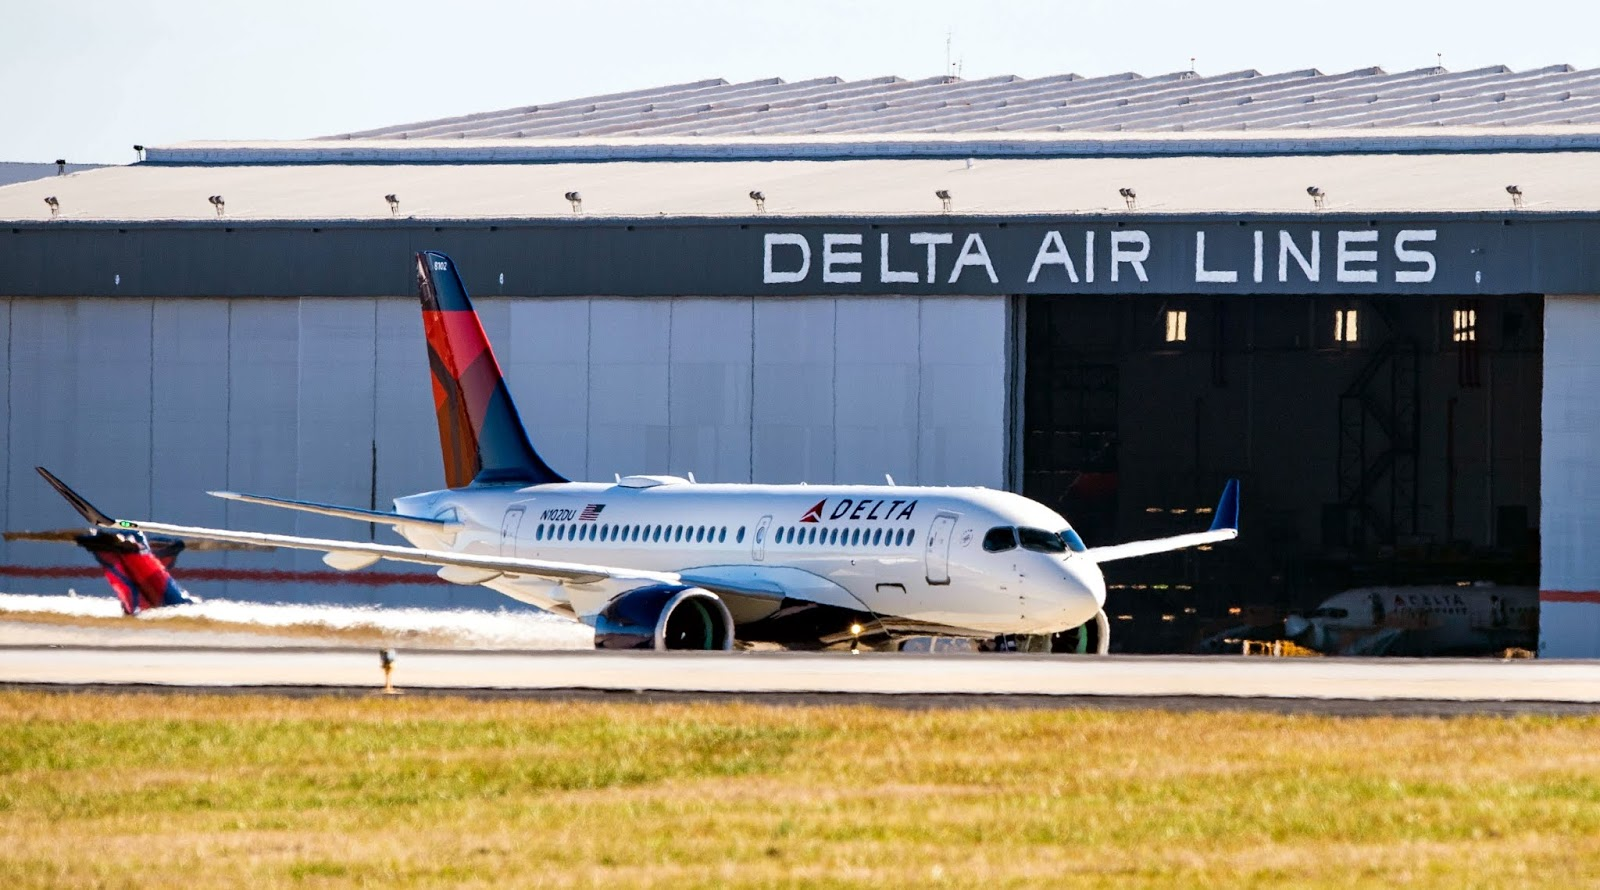 Delta Air Lines Airbus A220-100 In Front of Hangar